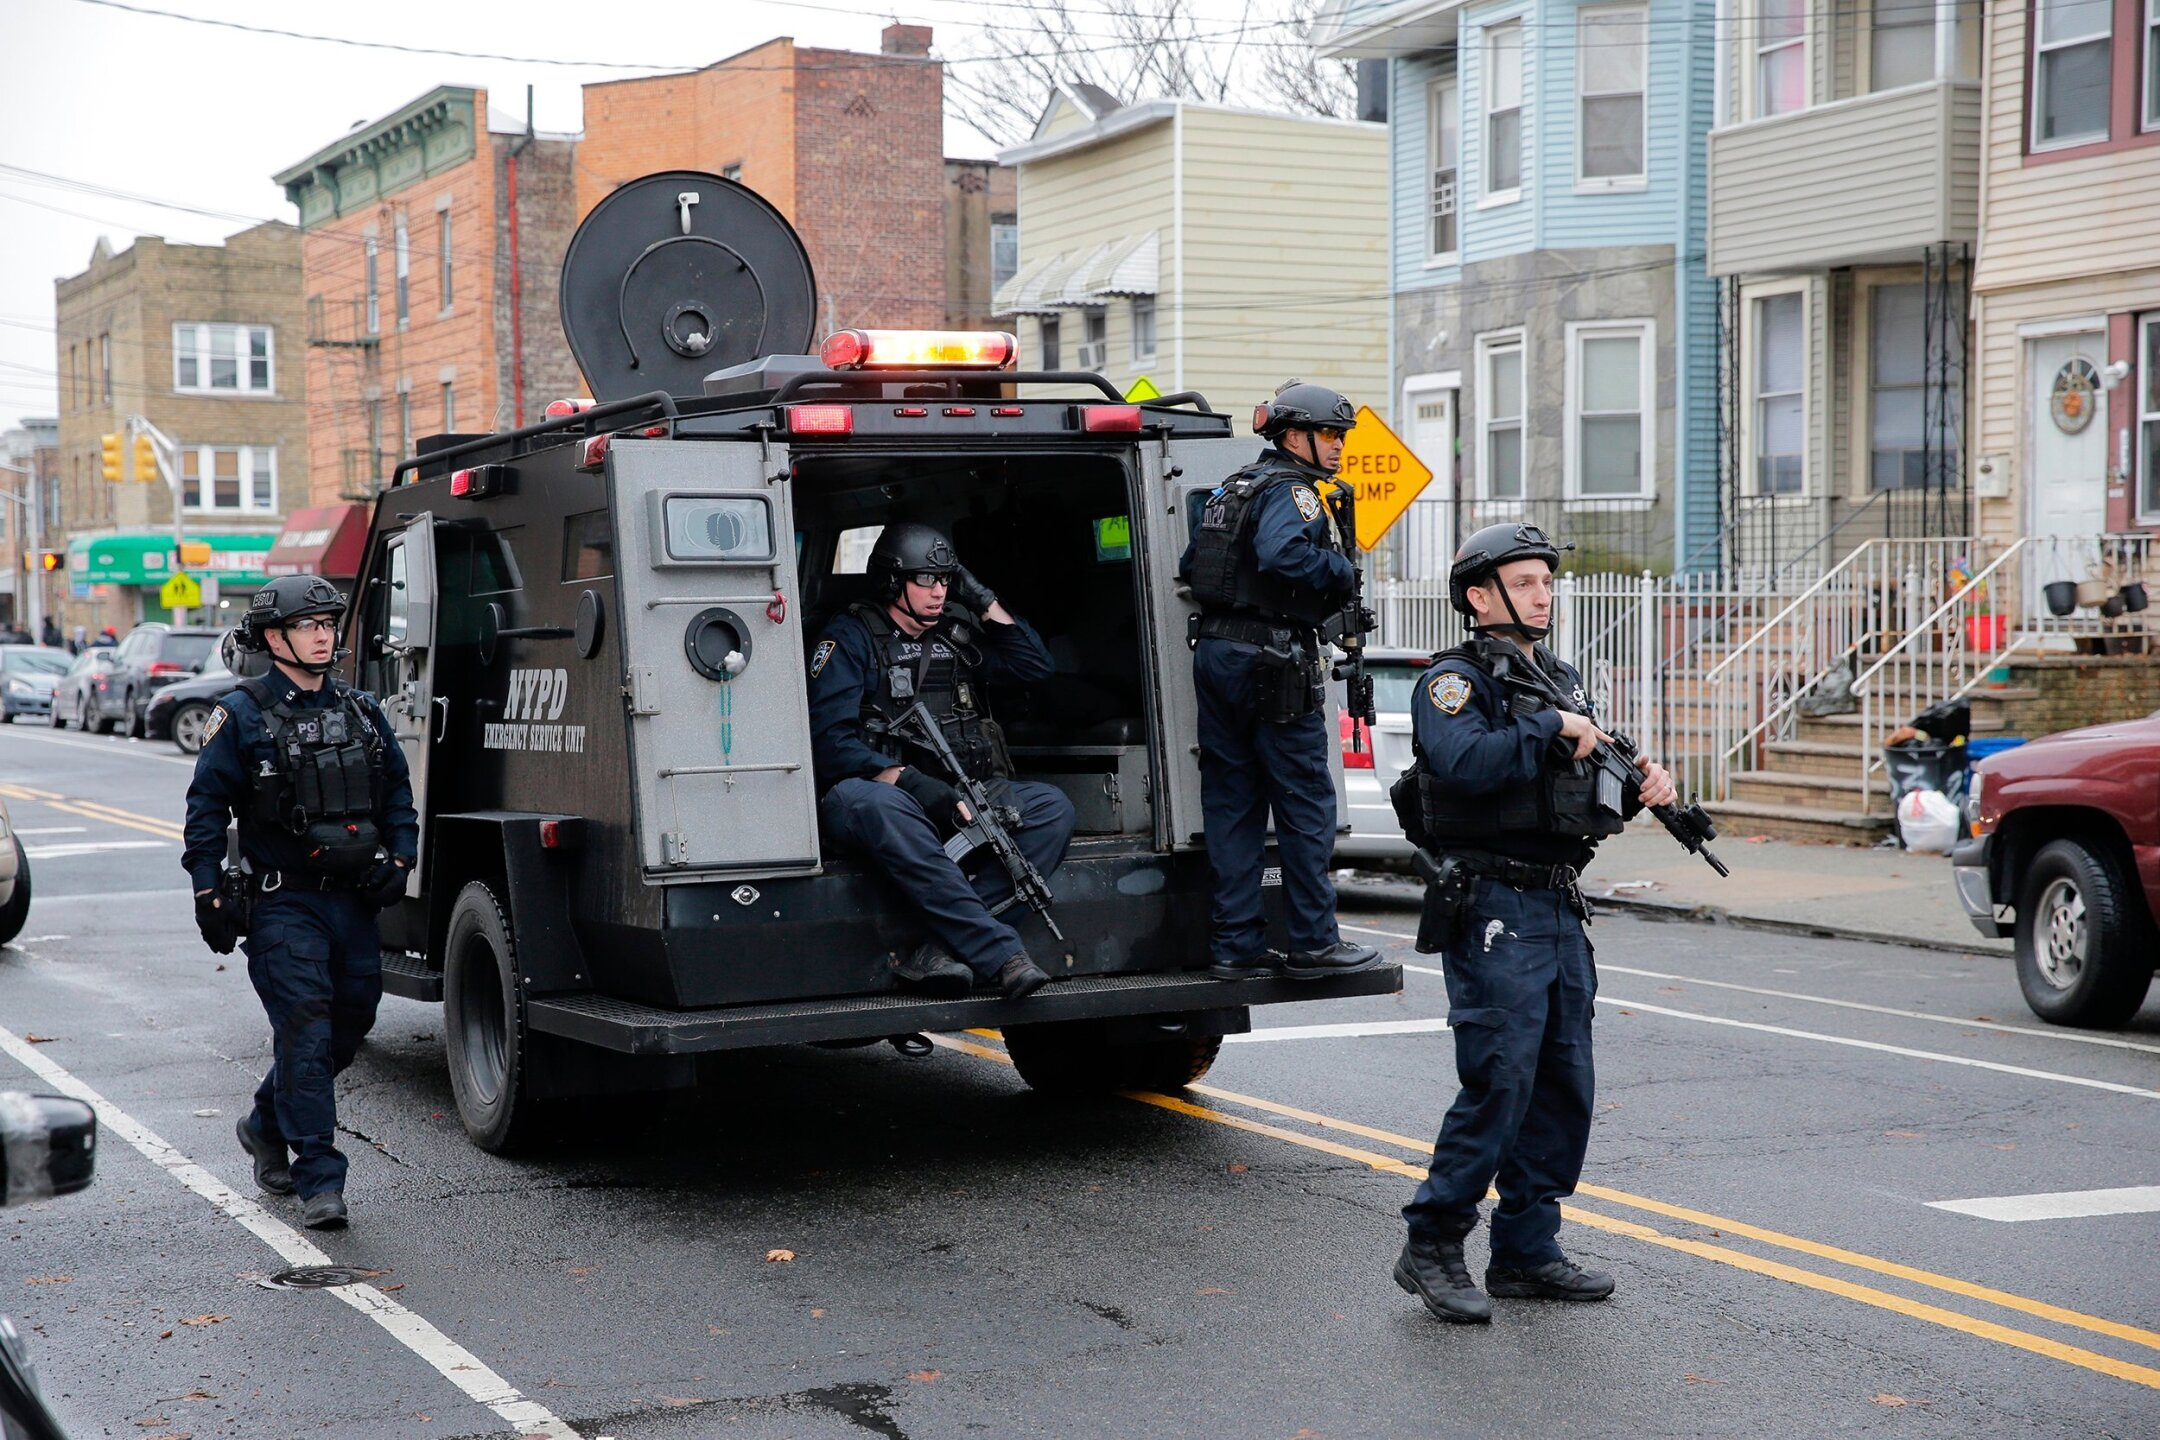 Photos: Jersey City shooters left pipe bomb in stolen U-Haul, attorney general says